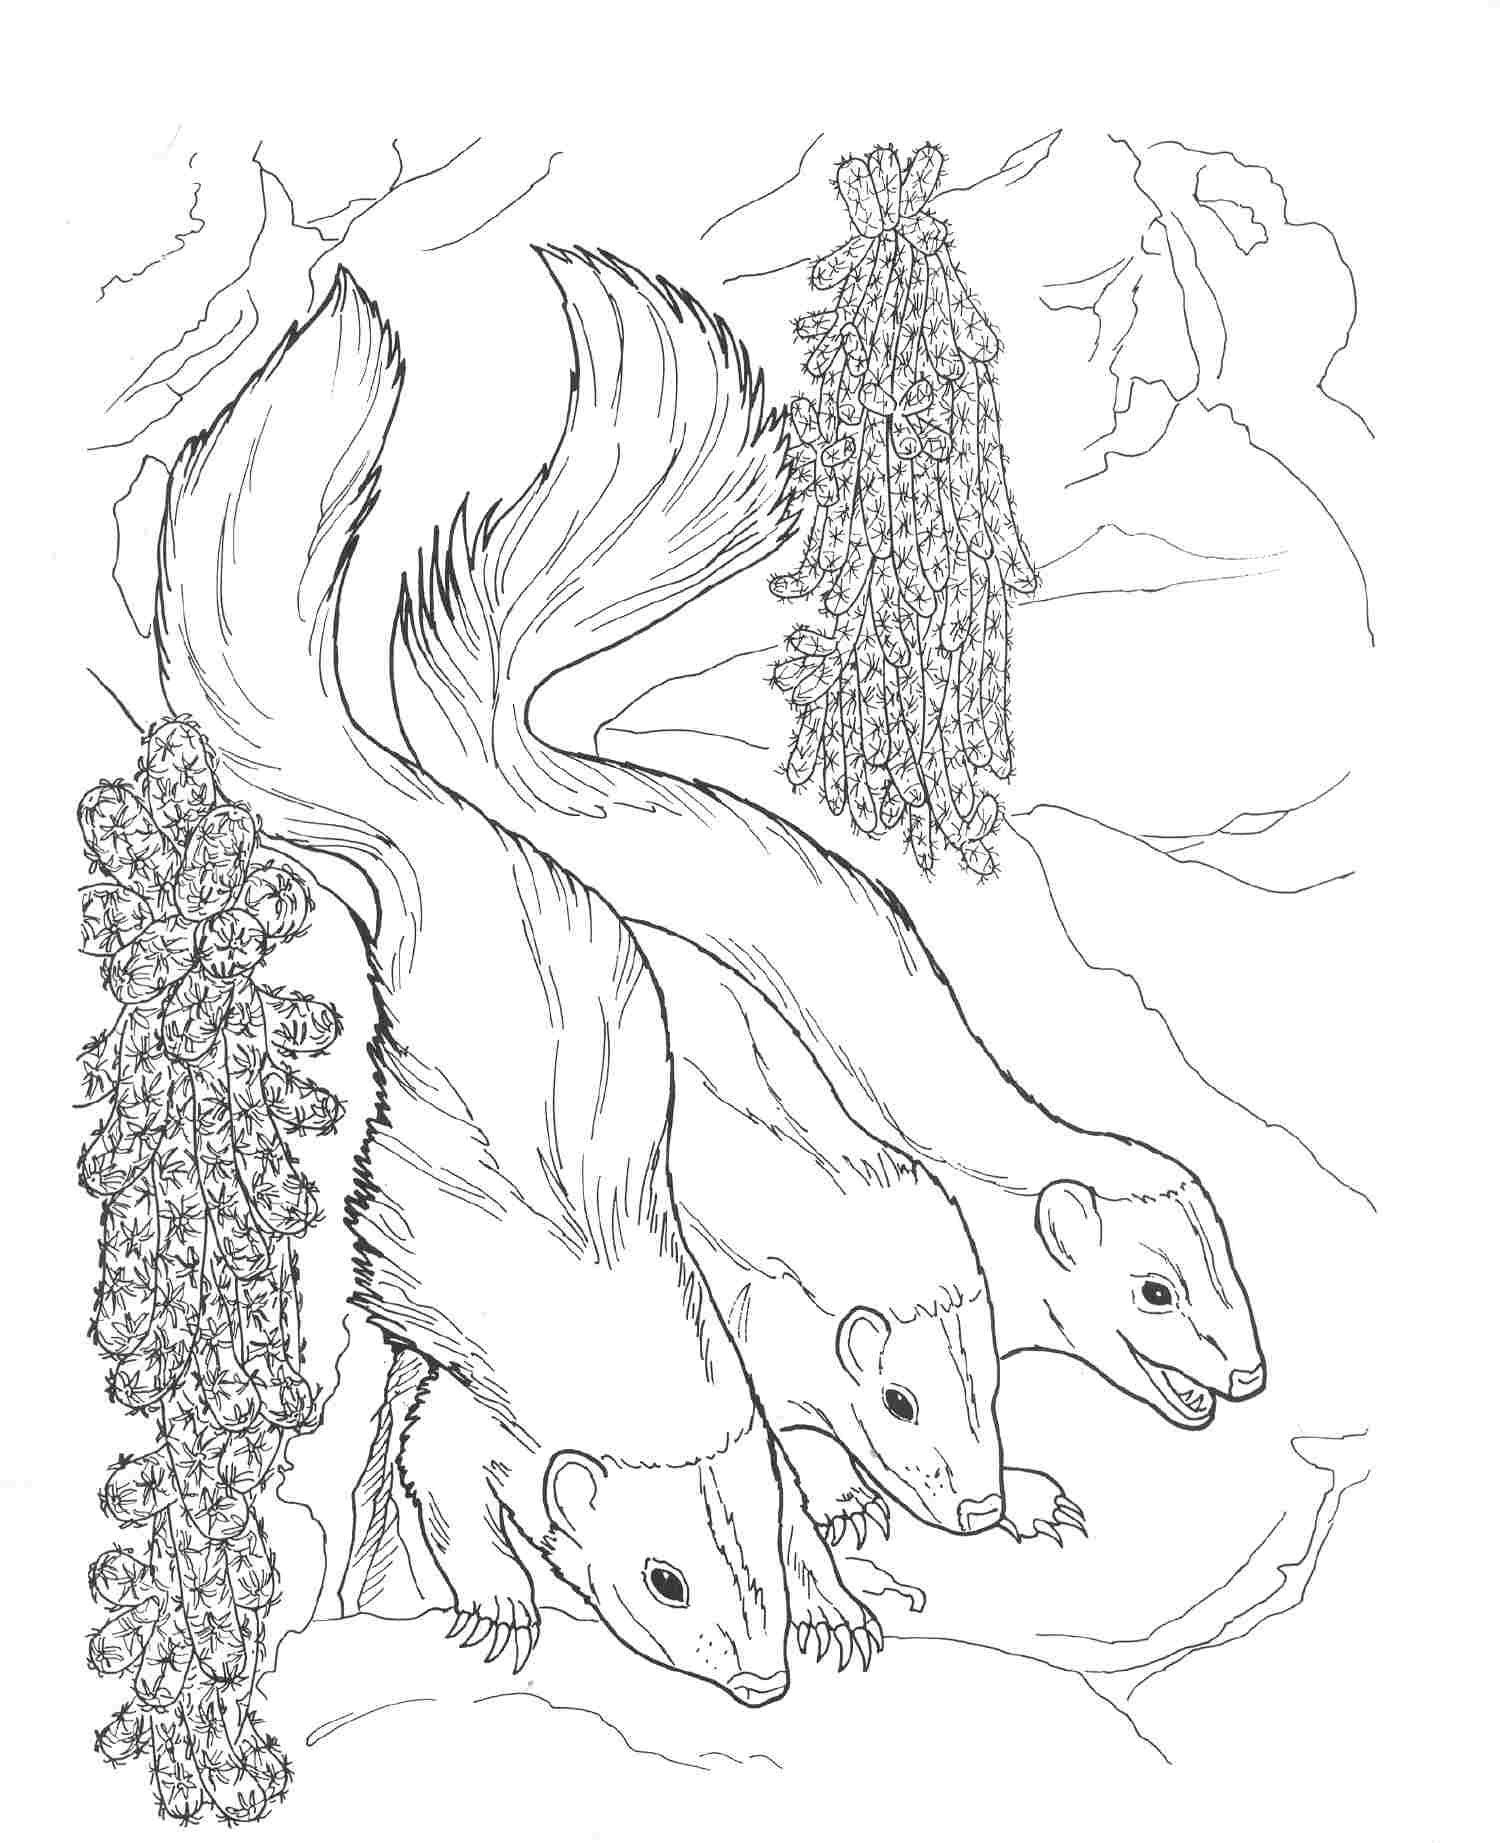 nocturnal animals coloring pages nocturnal animals printable coloring pages coloring pages pages animals nocturnal coloring